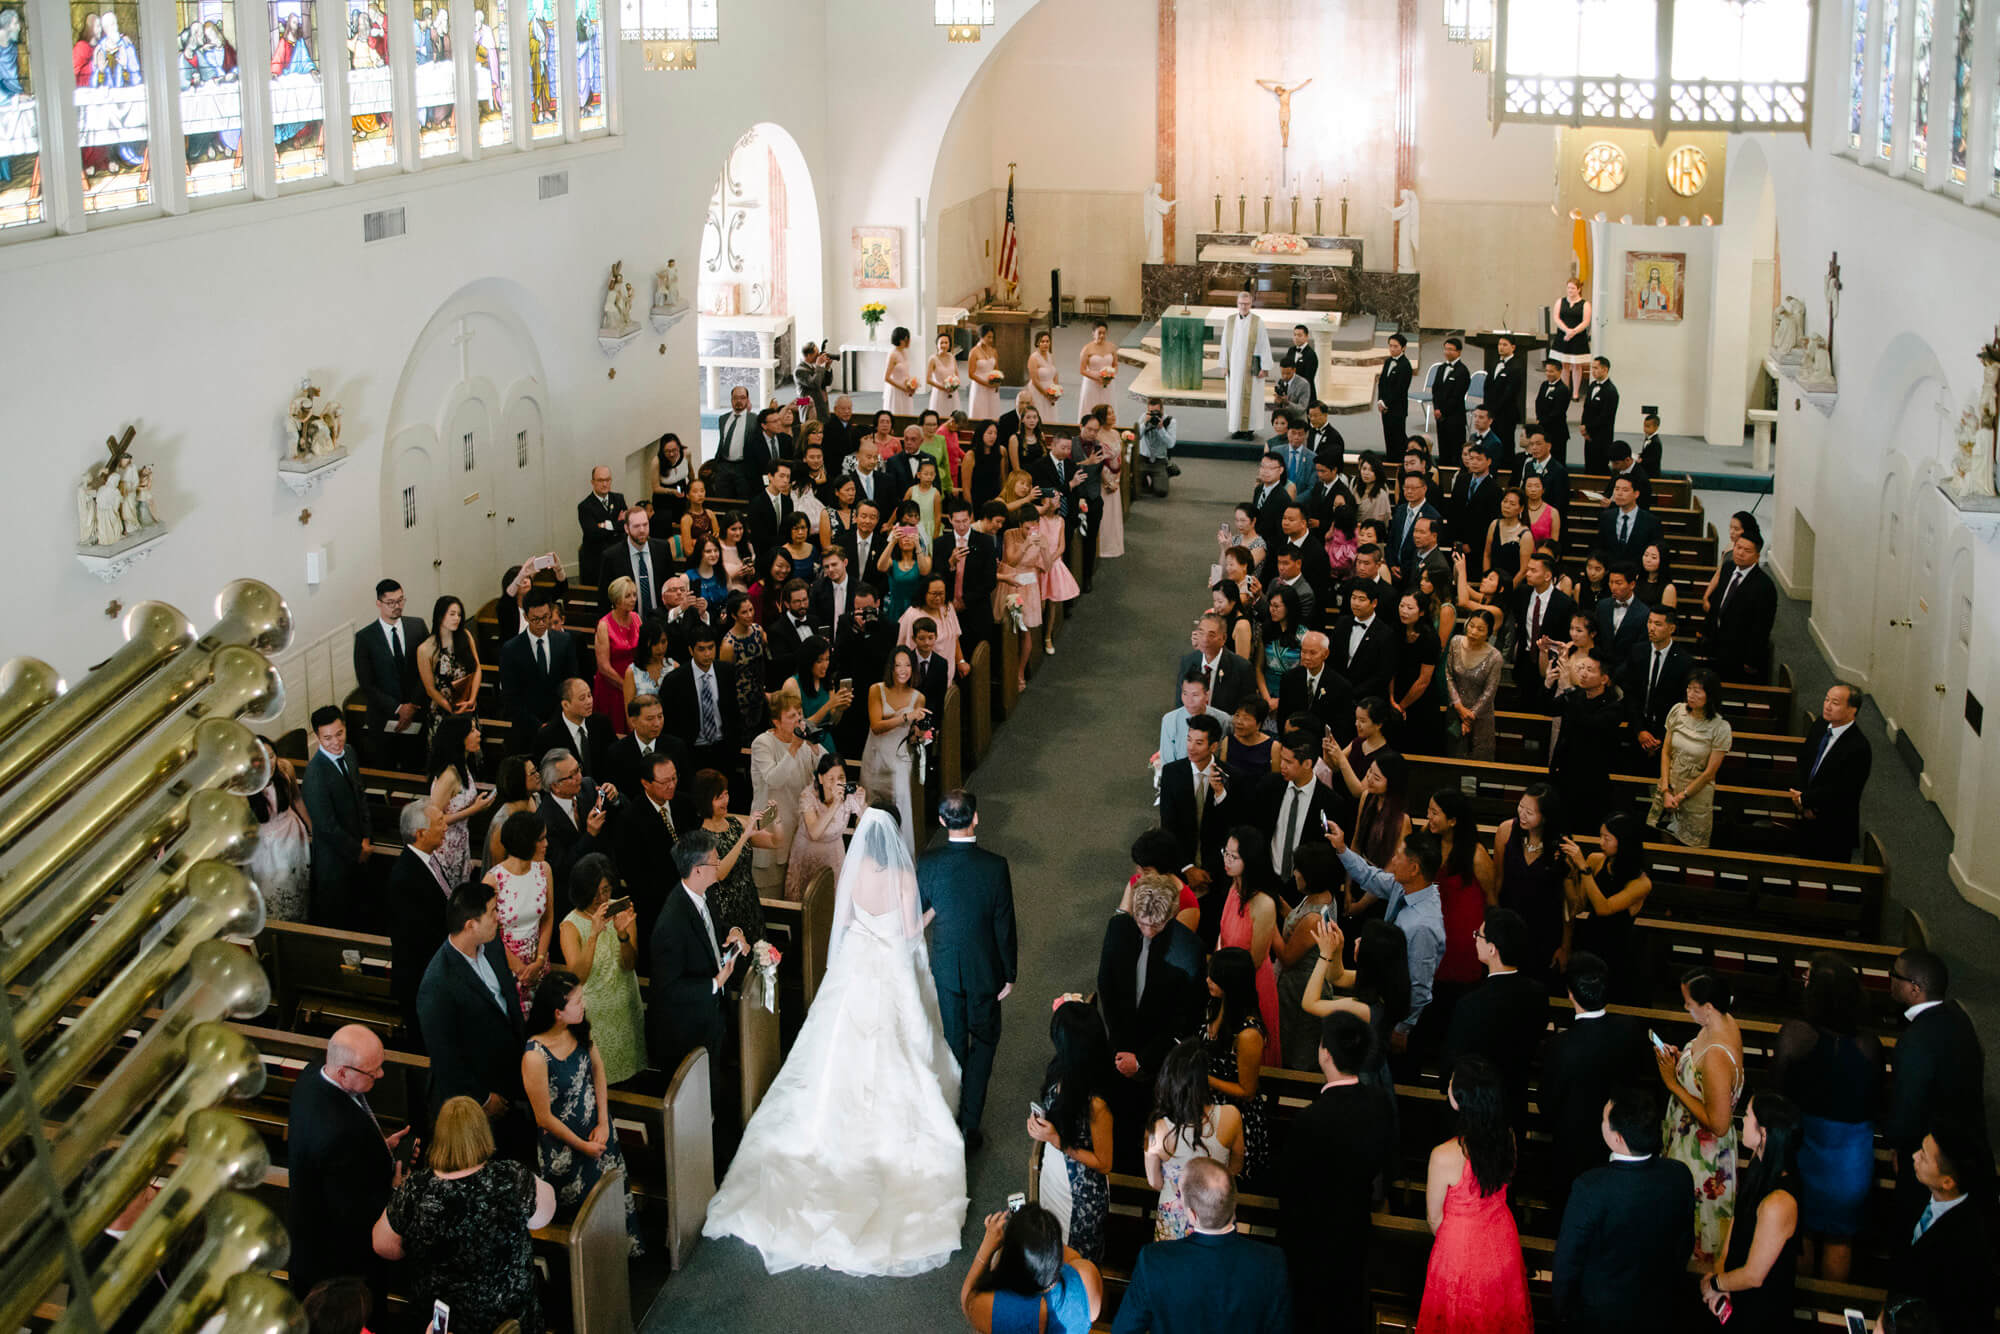 father and daughter walk down aisle seen from balcony sacred heart church coronado